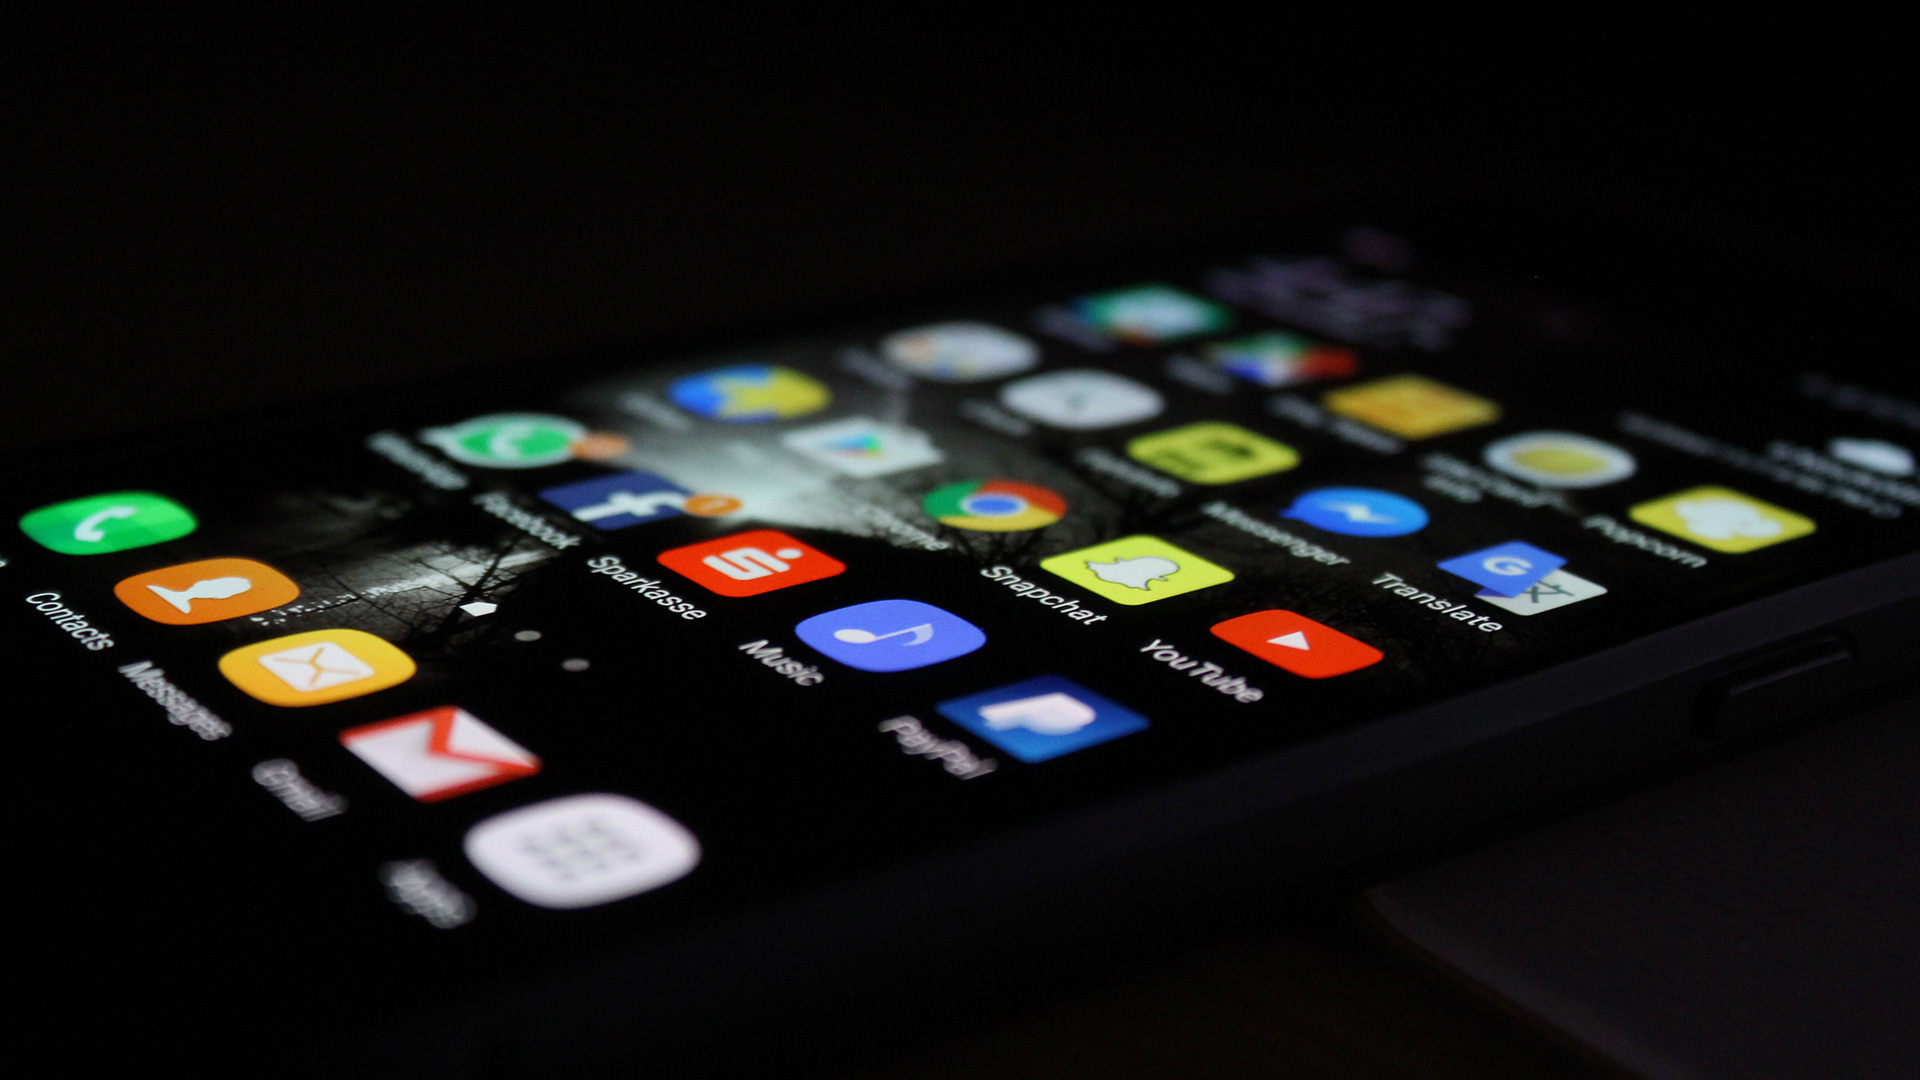 16 Crucial Things Companies Often Forget When Building Mobile Apps